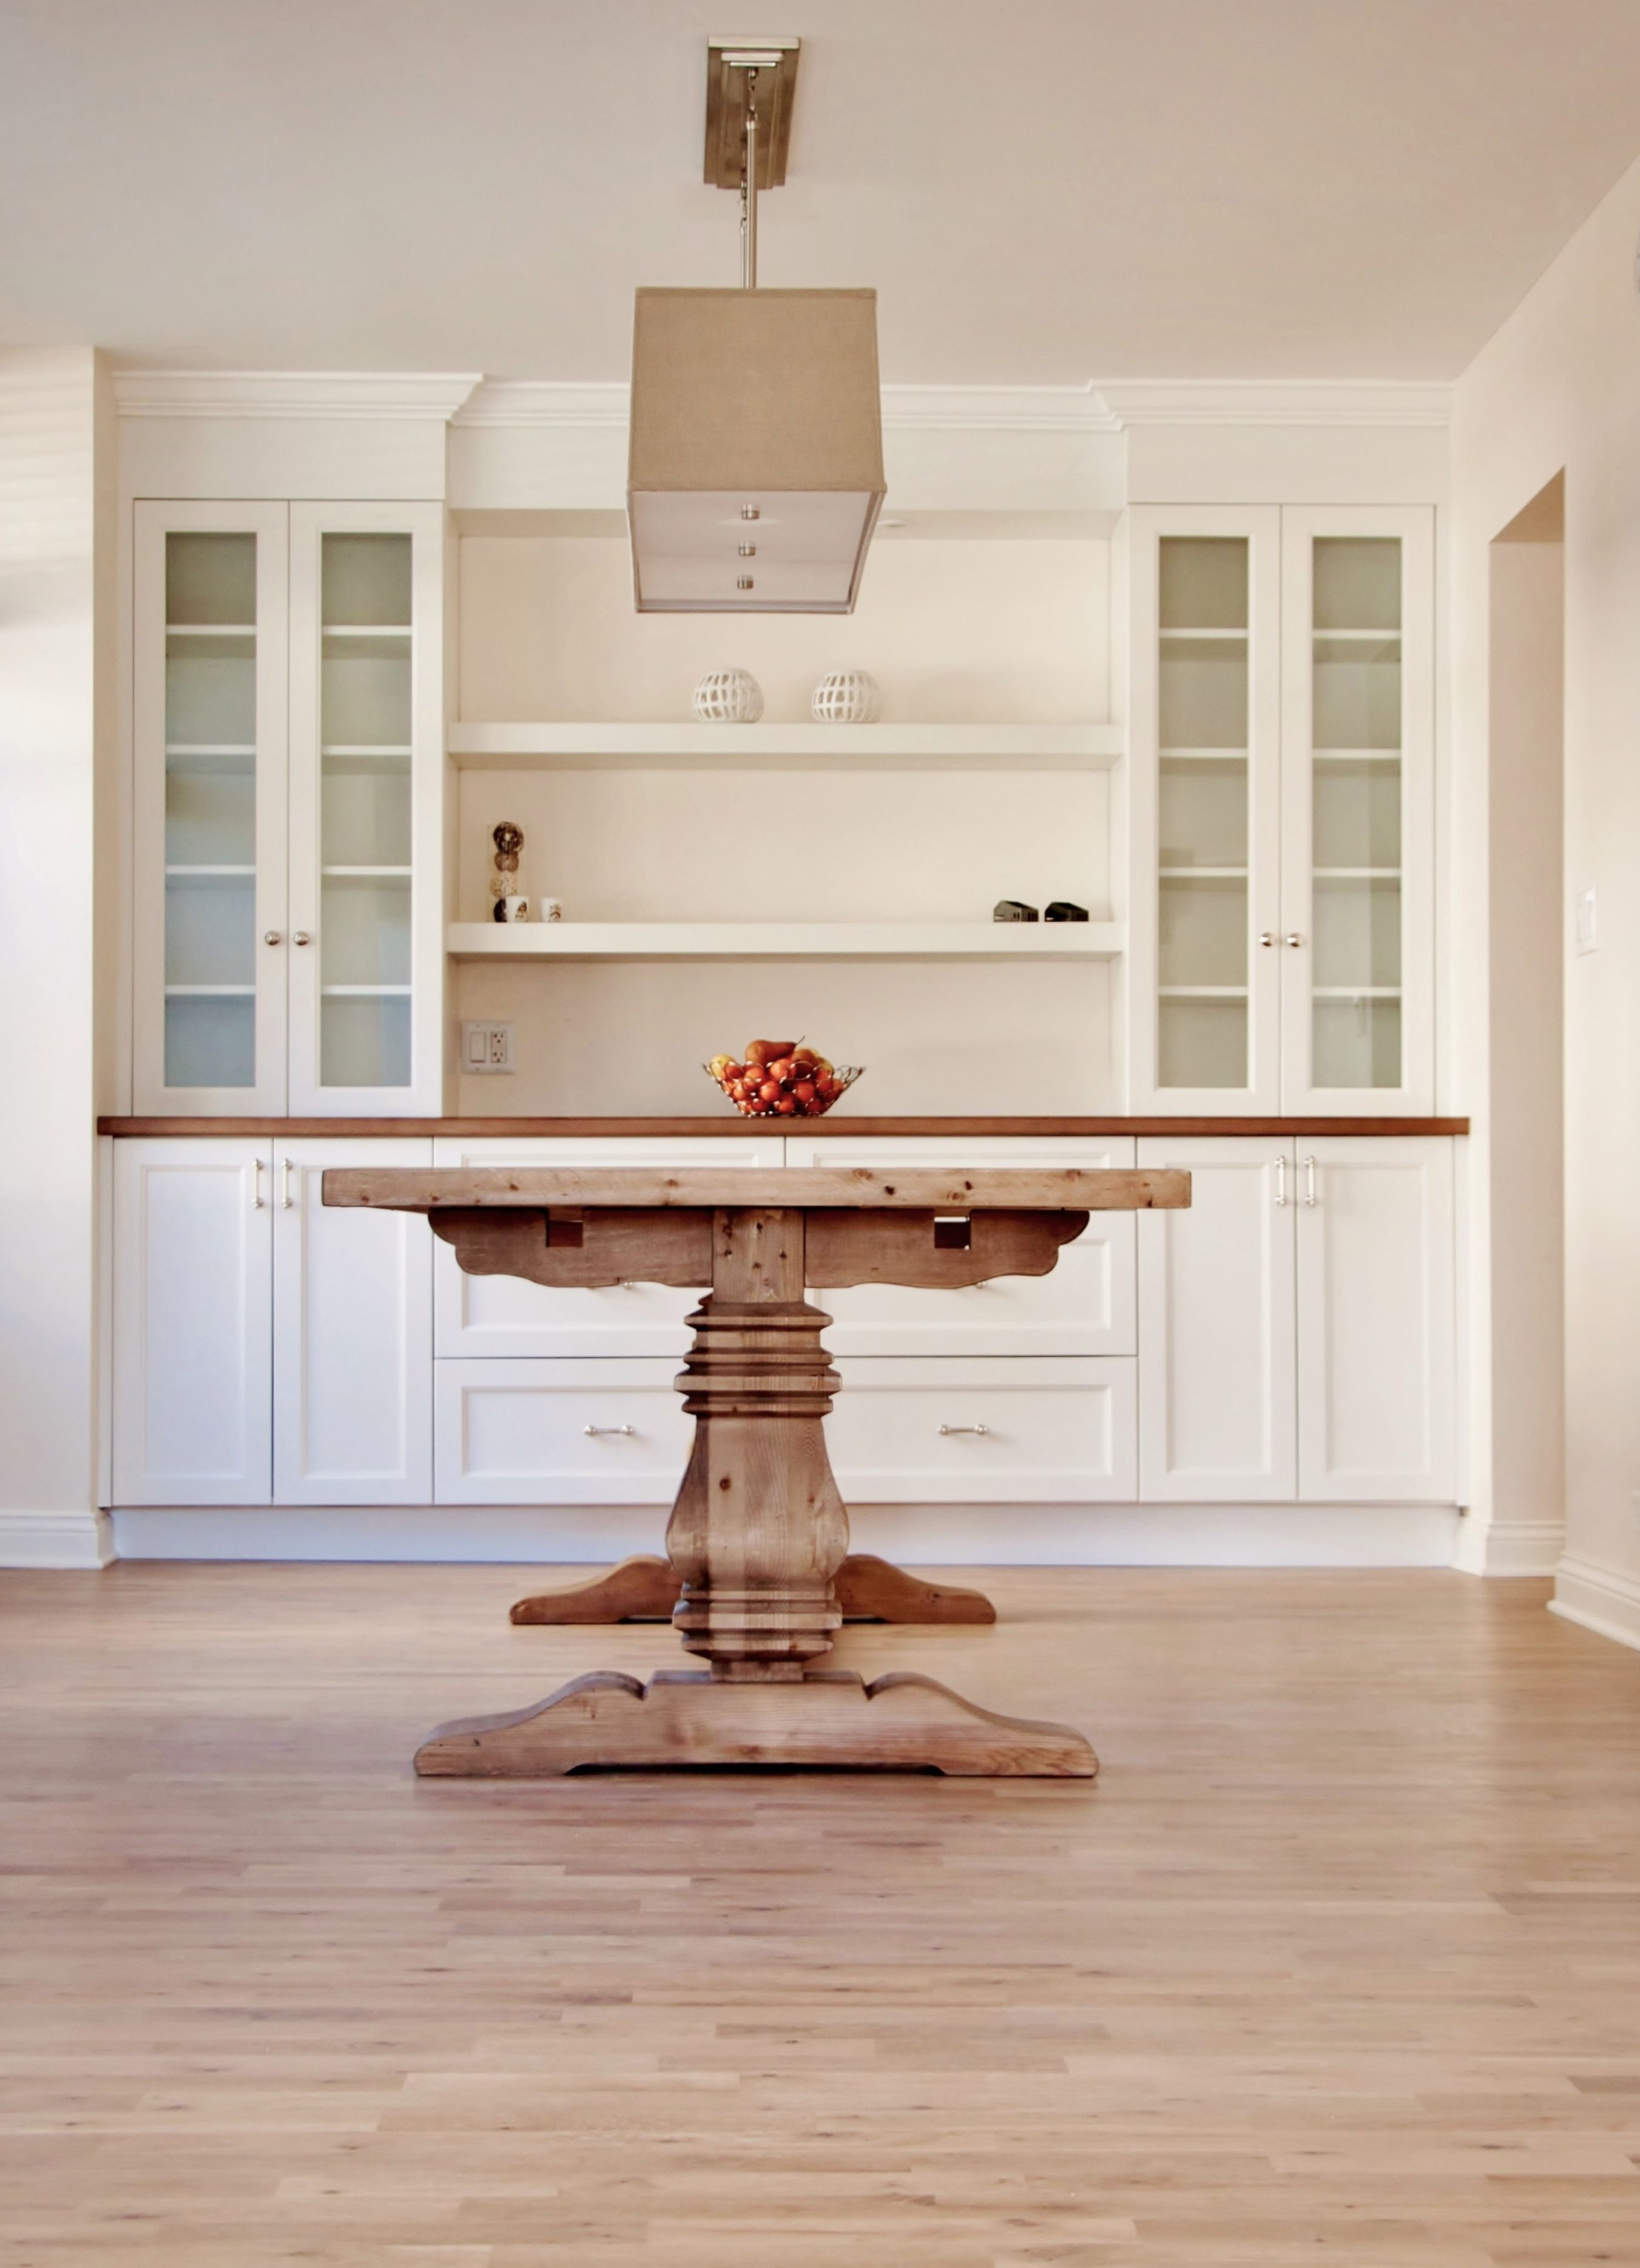 30 Marvelous Image Of Dining Room Builtins Dining Room Builtins